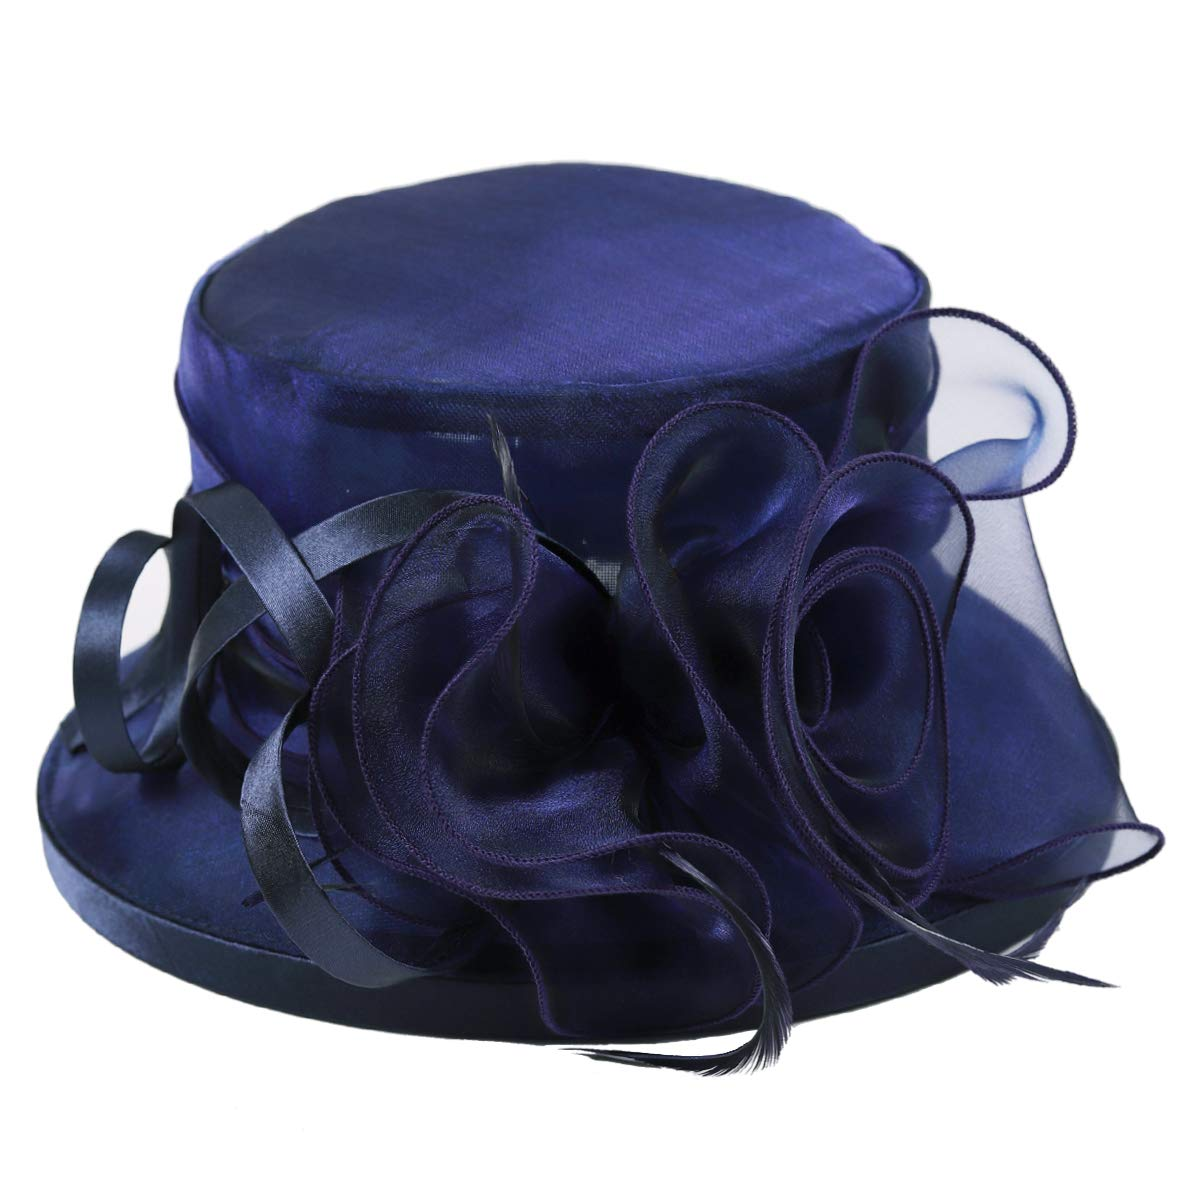 Lady Church Derby Dress Cloche Hat Fascinator Floral Tea Party Wedding Bucket Hat S051 (S043-Navy) by Ruphedy (Image #2)